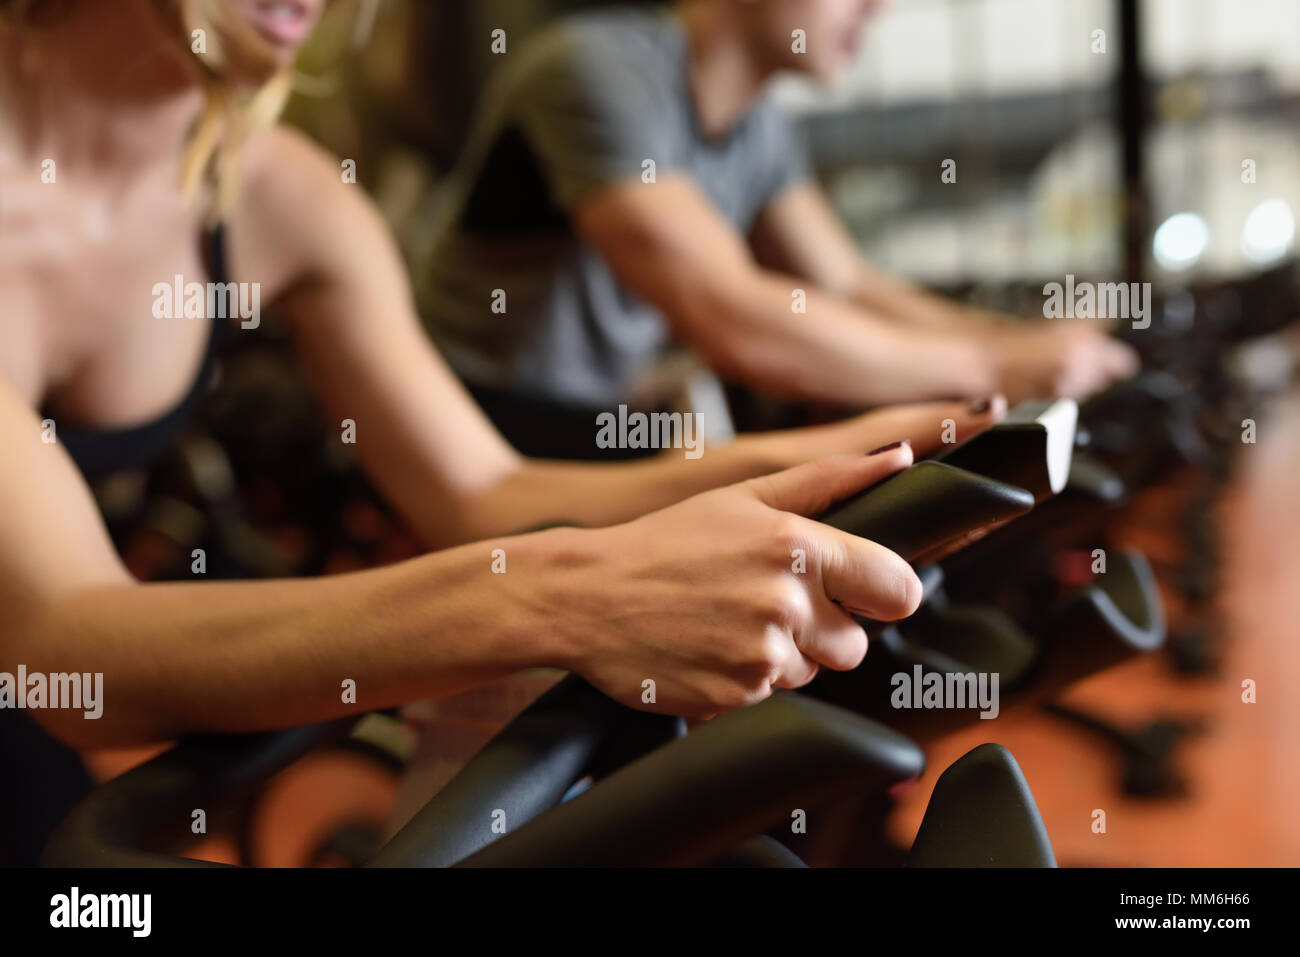 Two people biking in the gym, exercising legs doing cardio workout cycling bikes. Couple in a spinning class wearing sportswear. - Stock Image